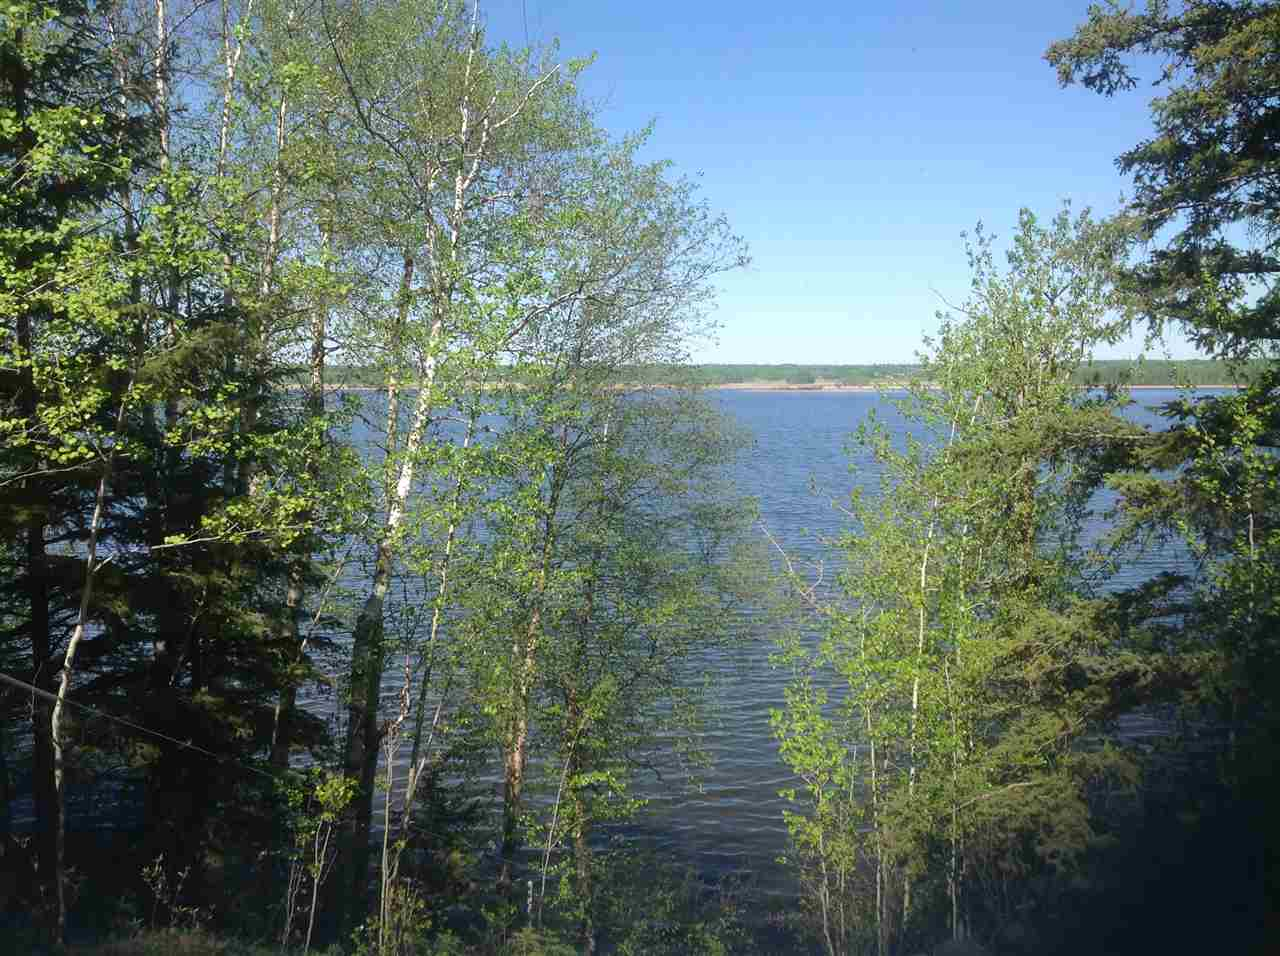 Photo 12: 18 53424 Rge Rd 60: Rural Parkland County Rural Land/Vacant Lot for sale : MLS® # E4019546